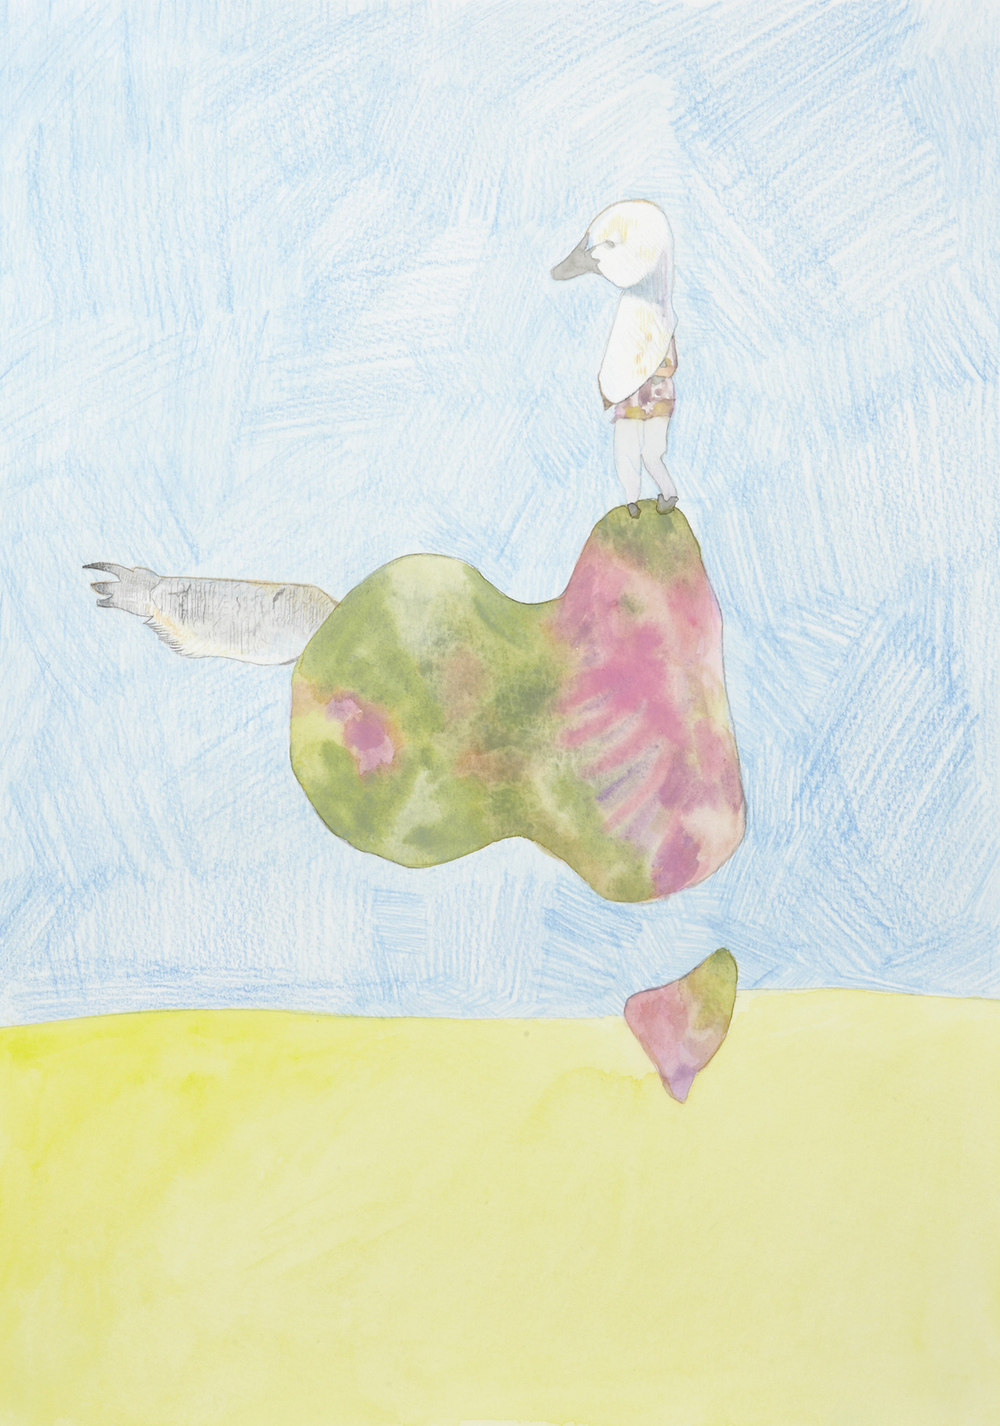 Australia #3, 2012, Watercolour and pencil on paper, 29.7 x 42.0 cm, Photo: Sam Scoufos